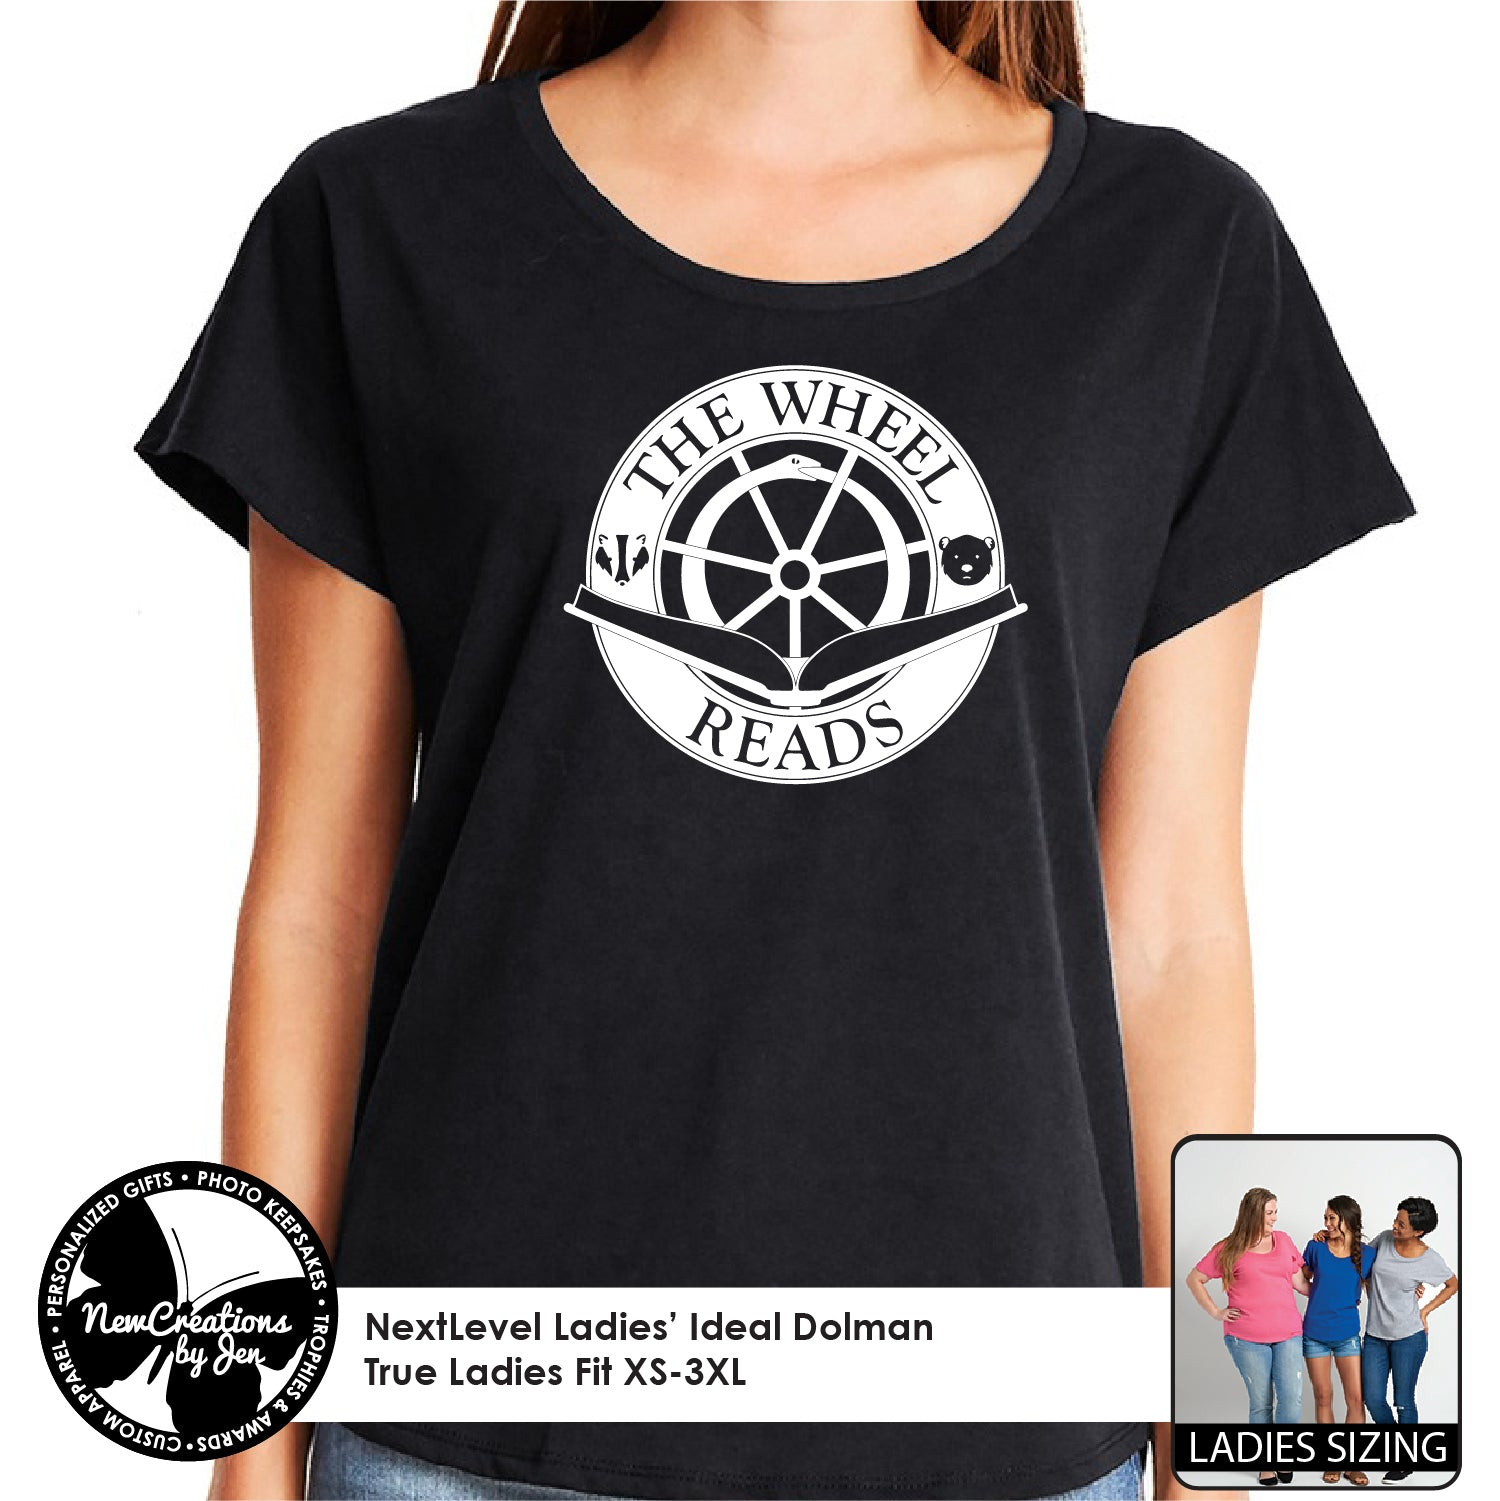 TWR - NextLevel Ladies' Dolman T-Shirt